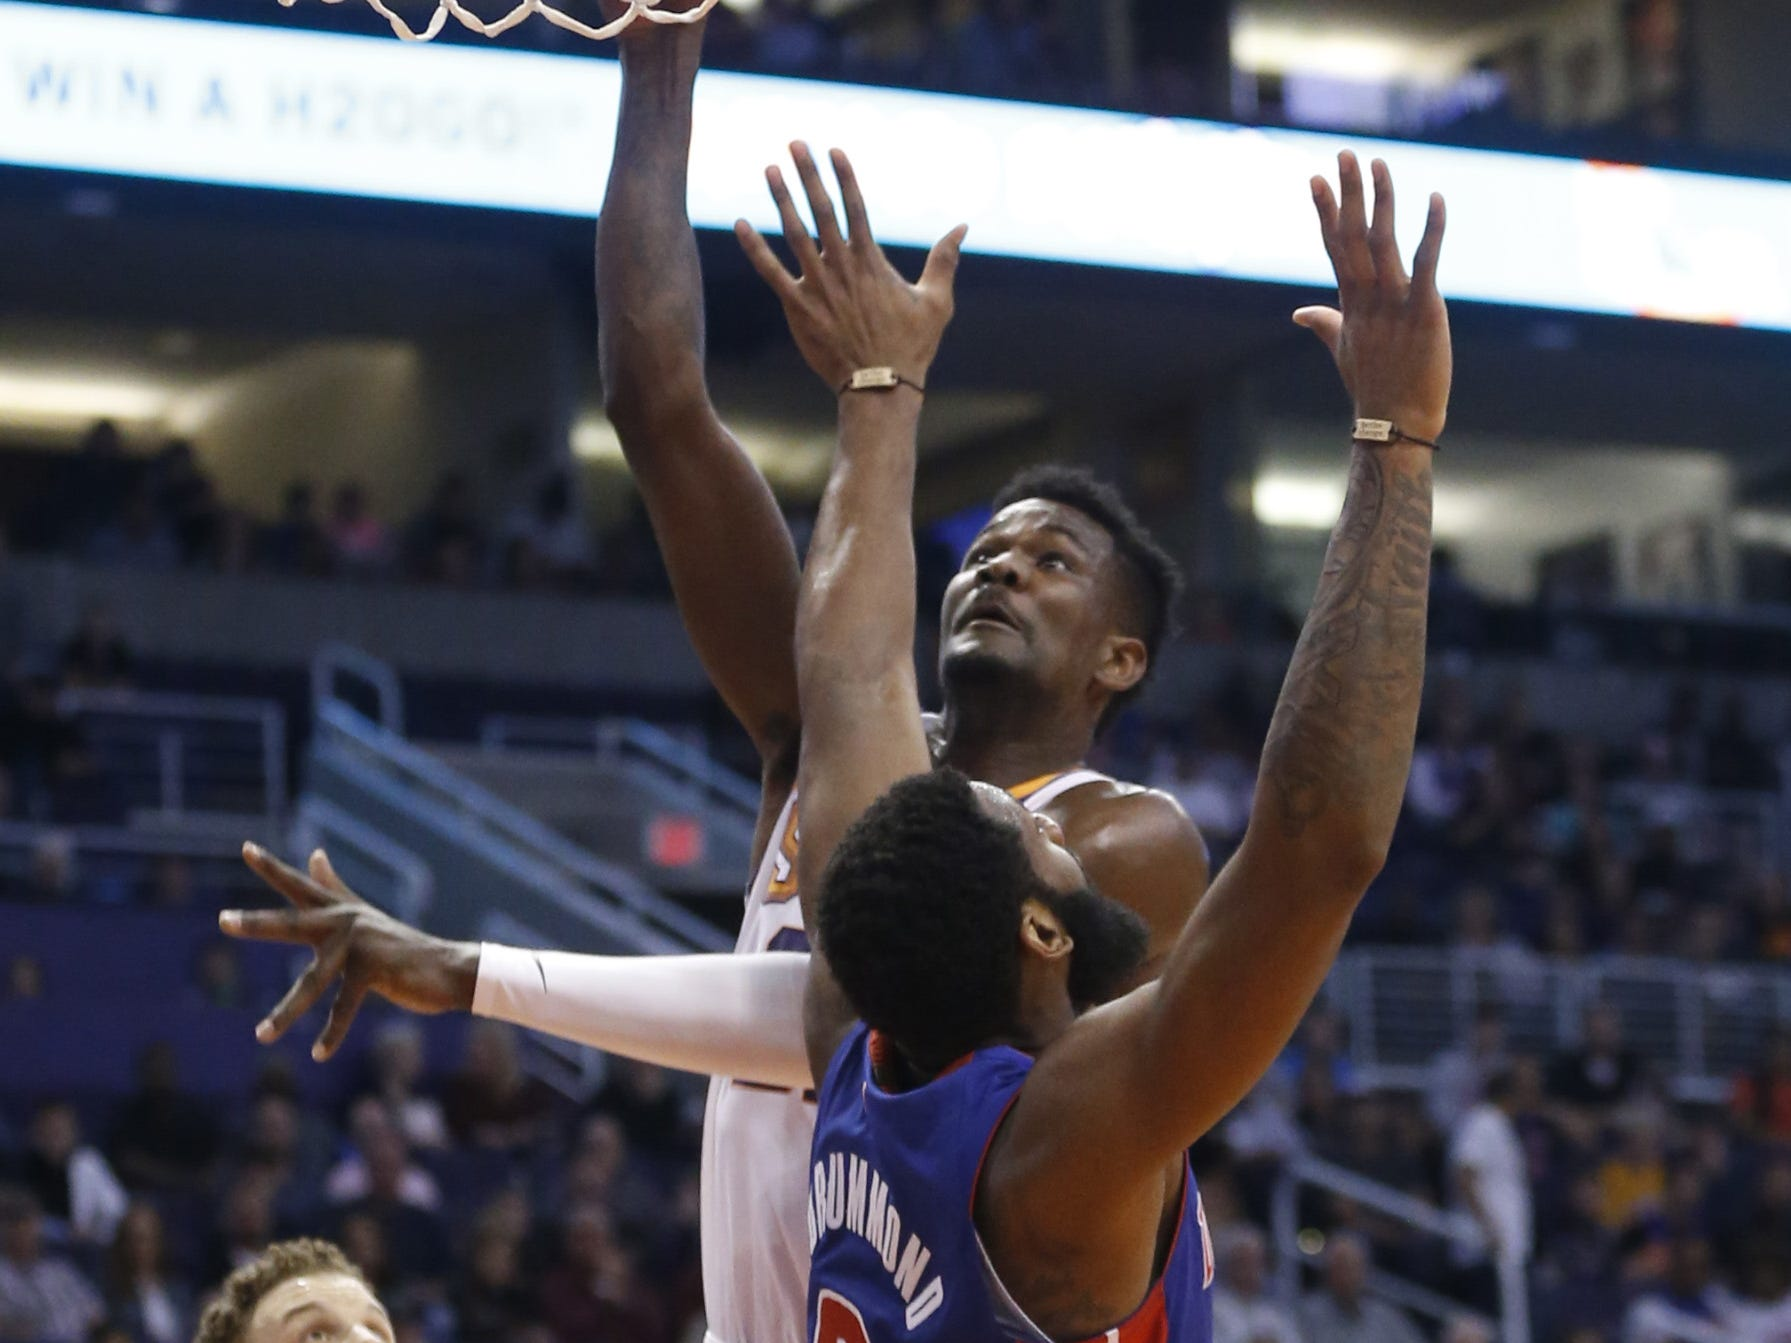 Suns' Deandre Ayton (22) scores against Pistons' Andre Drummond (0) during the first half at the Talking Stick Resort Arena in Phoenix, Ariz. on March 21, 2019.